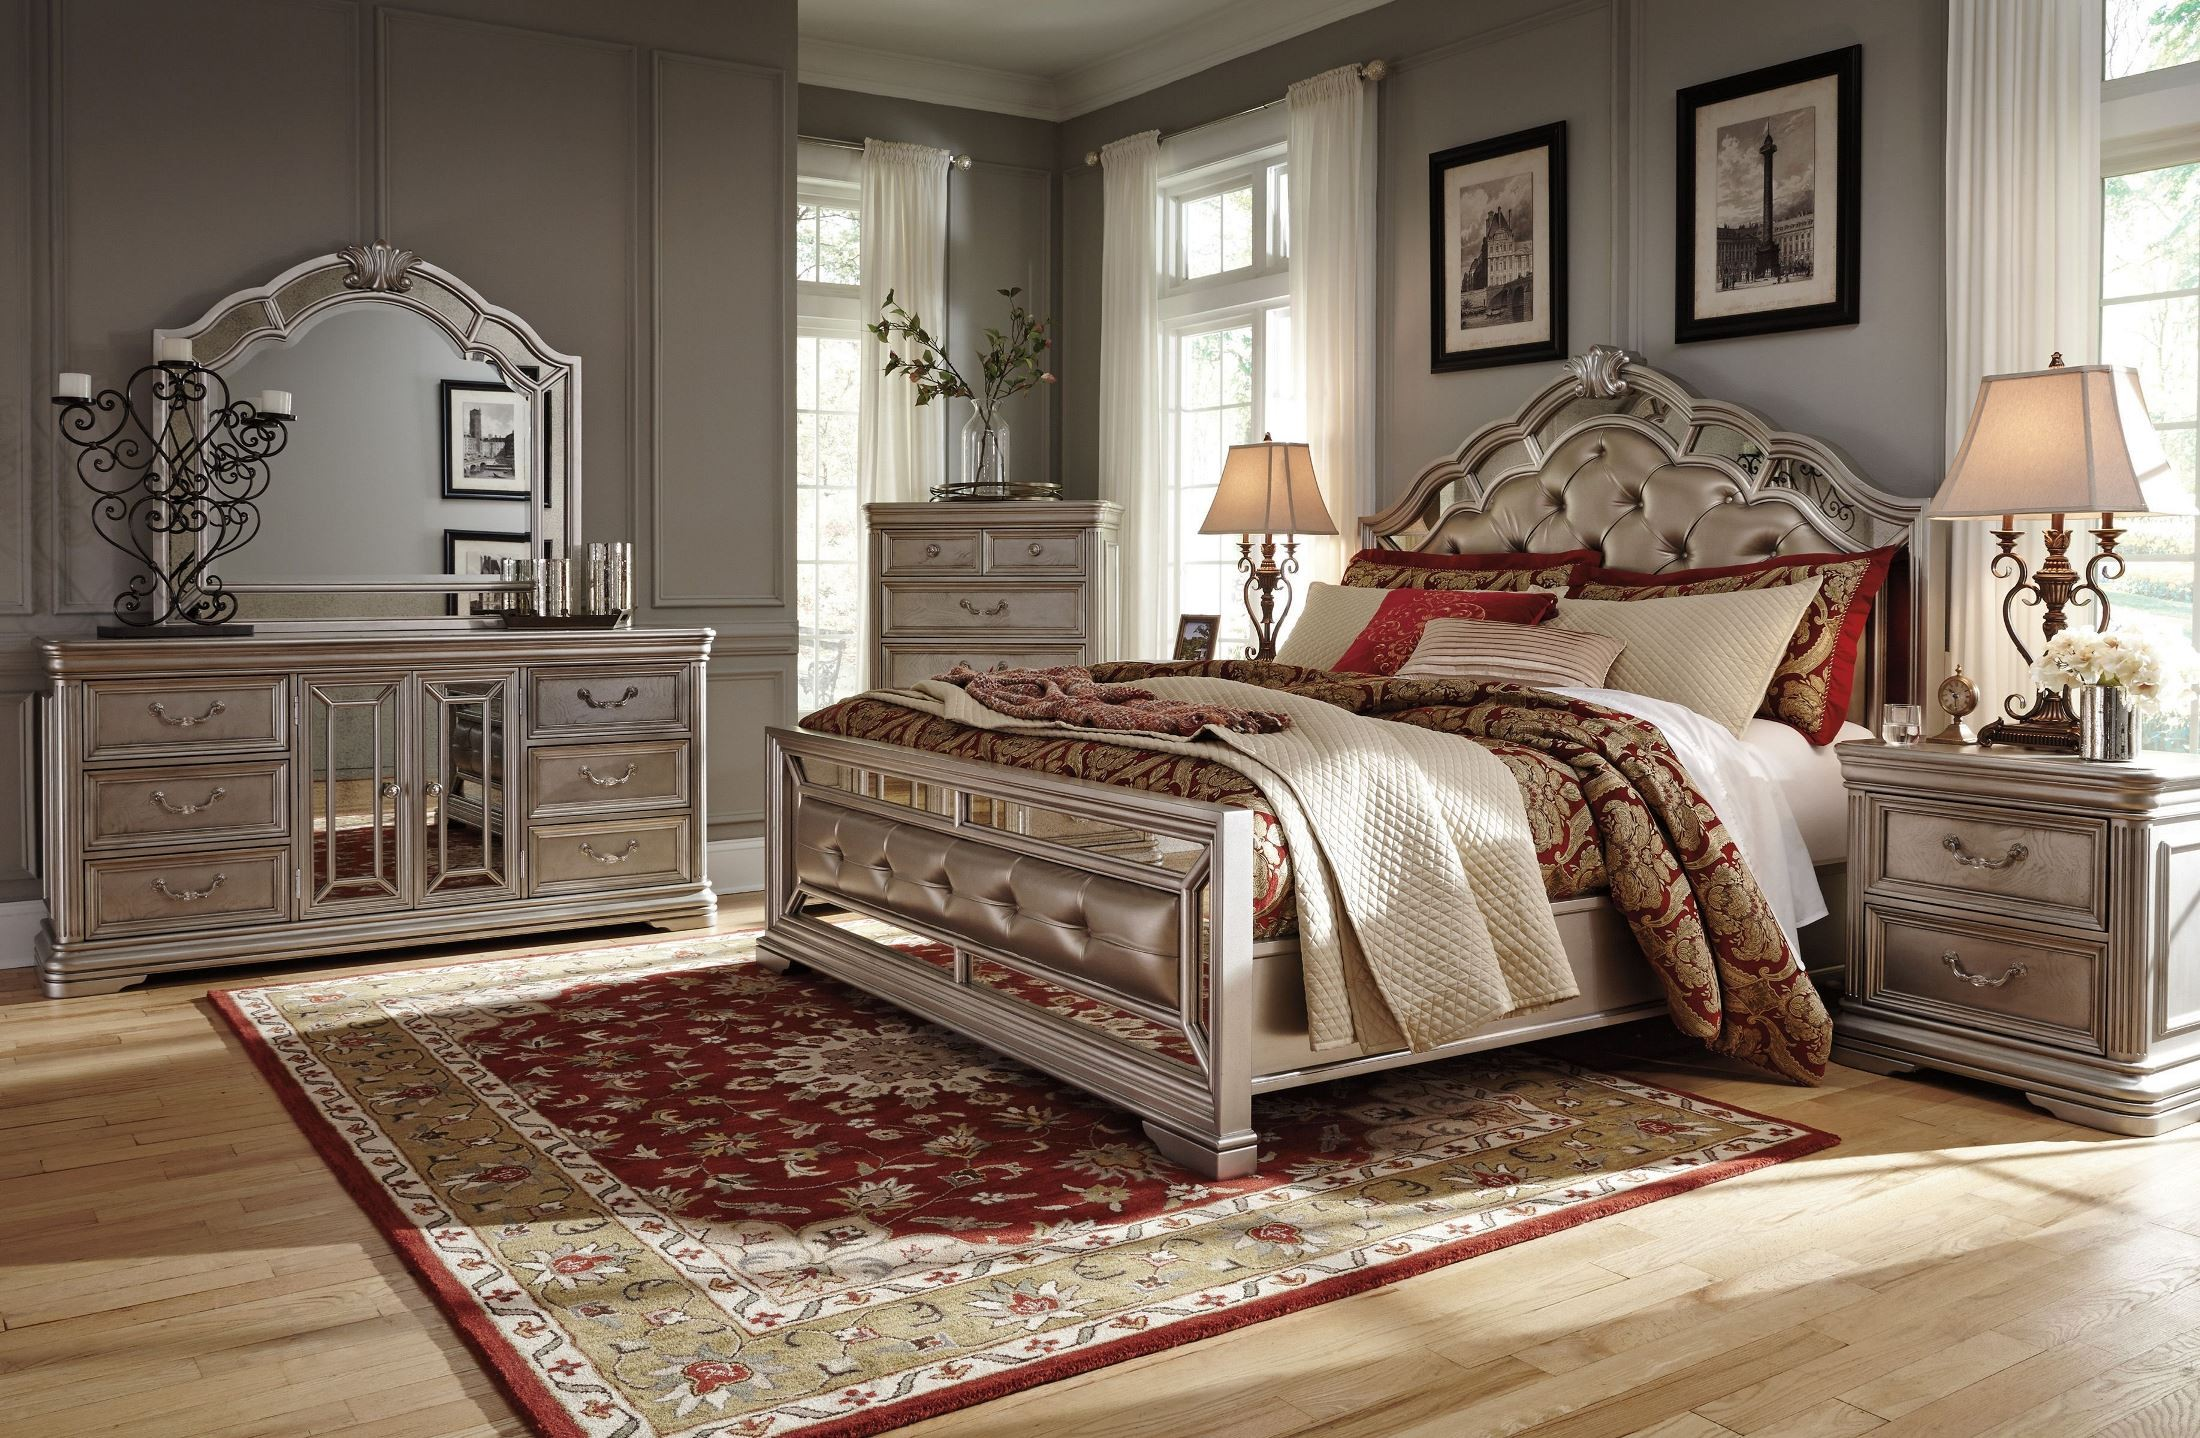 home bedroom furniture bedroom sets birlanny silver upholstere